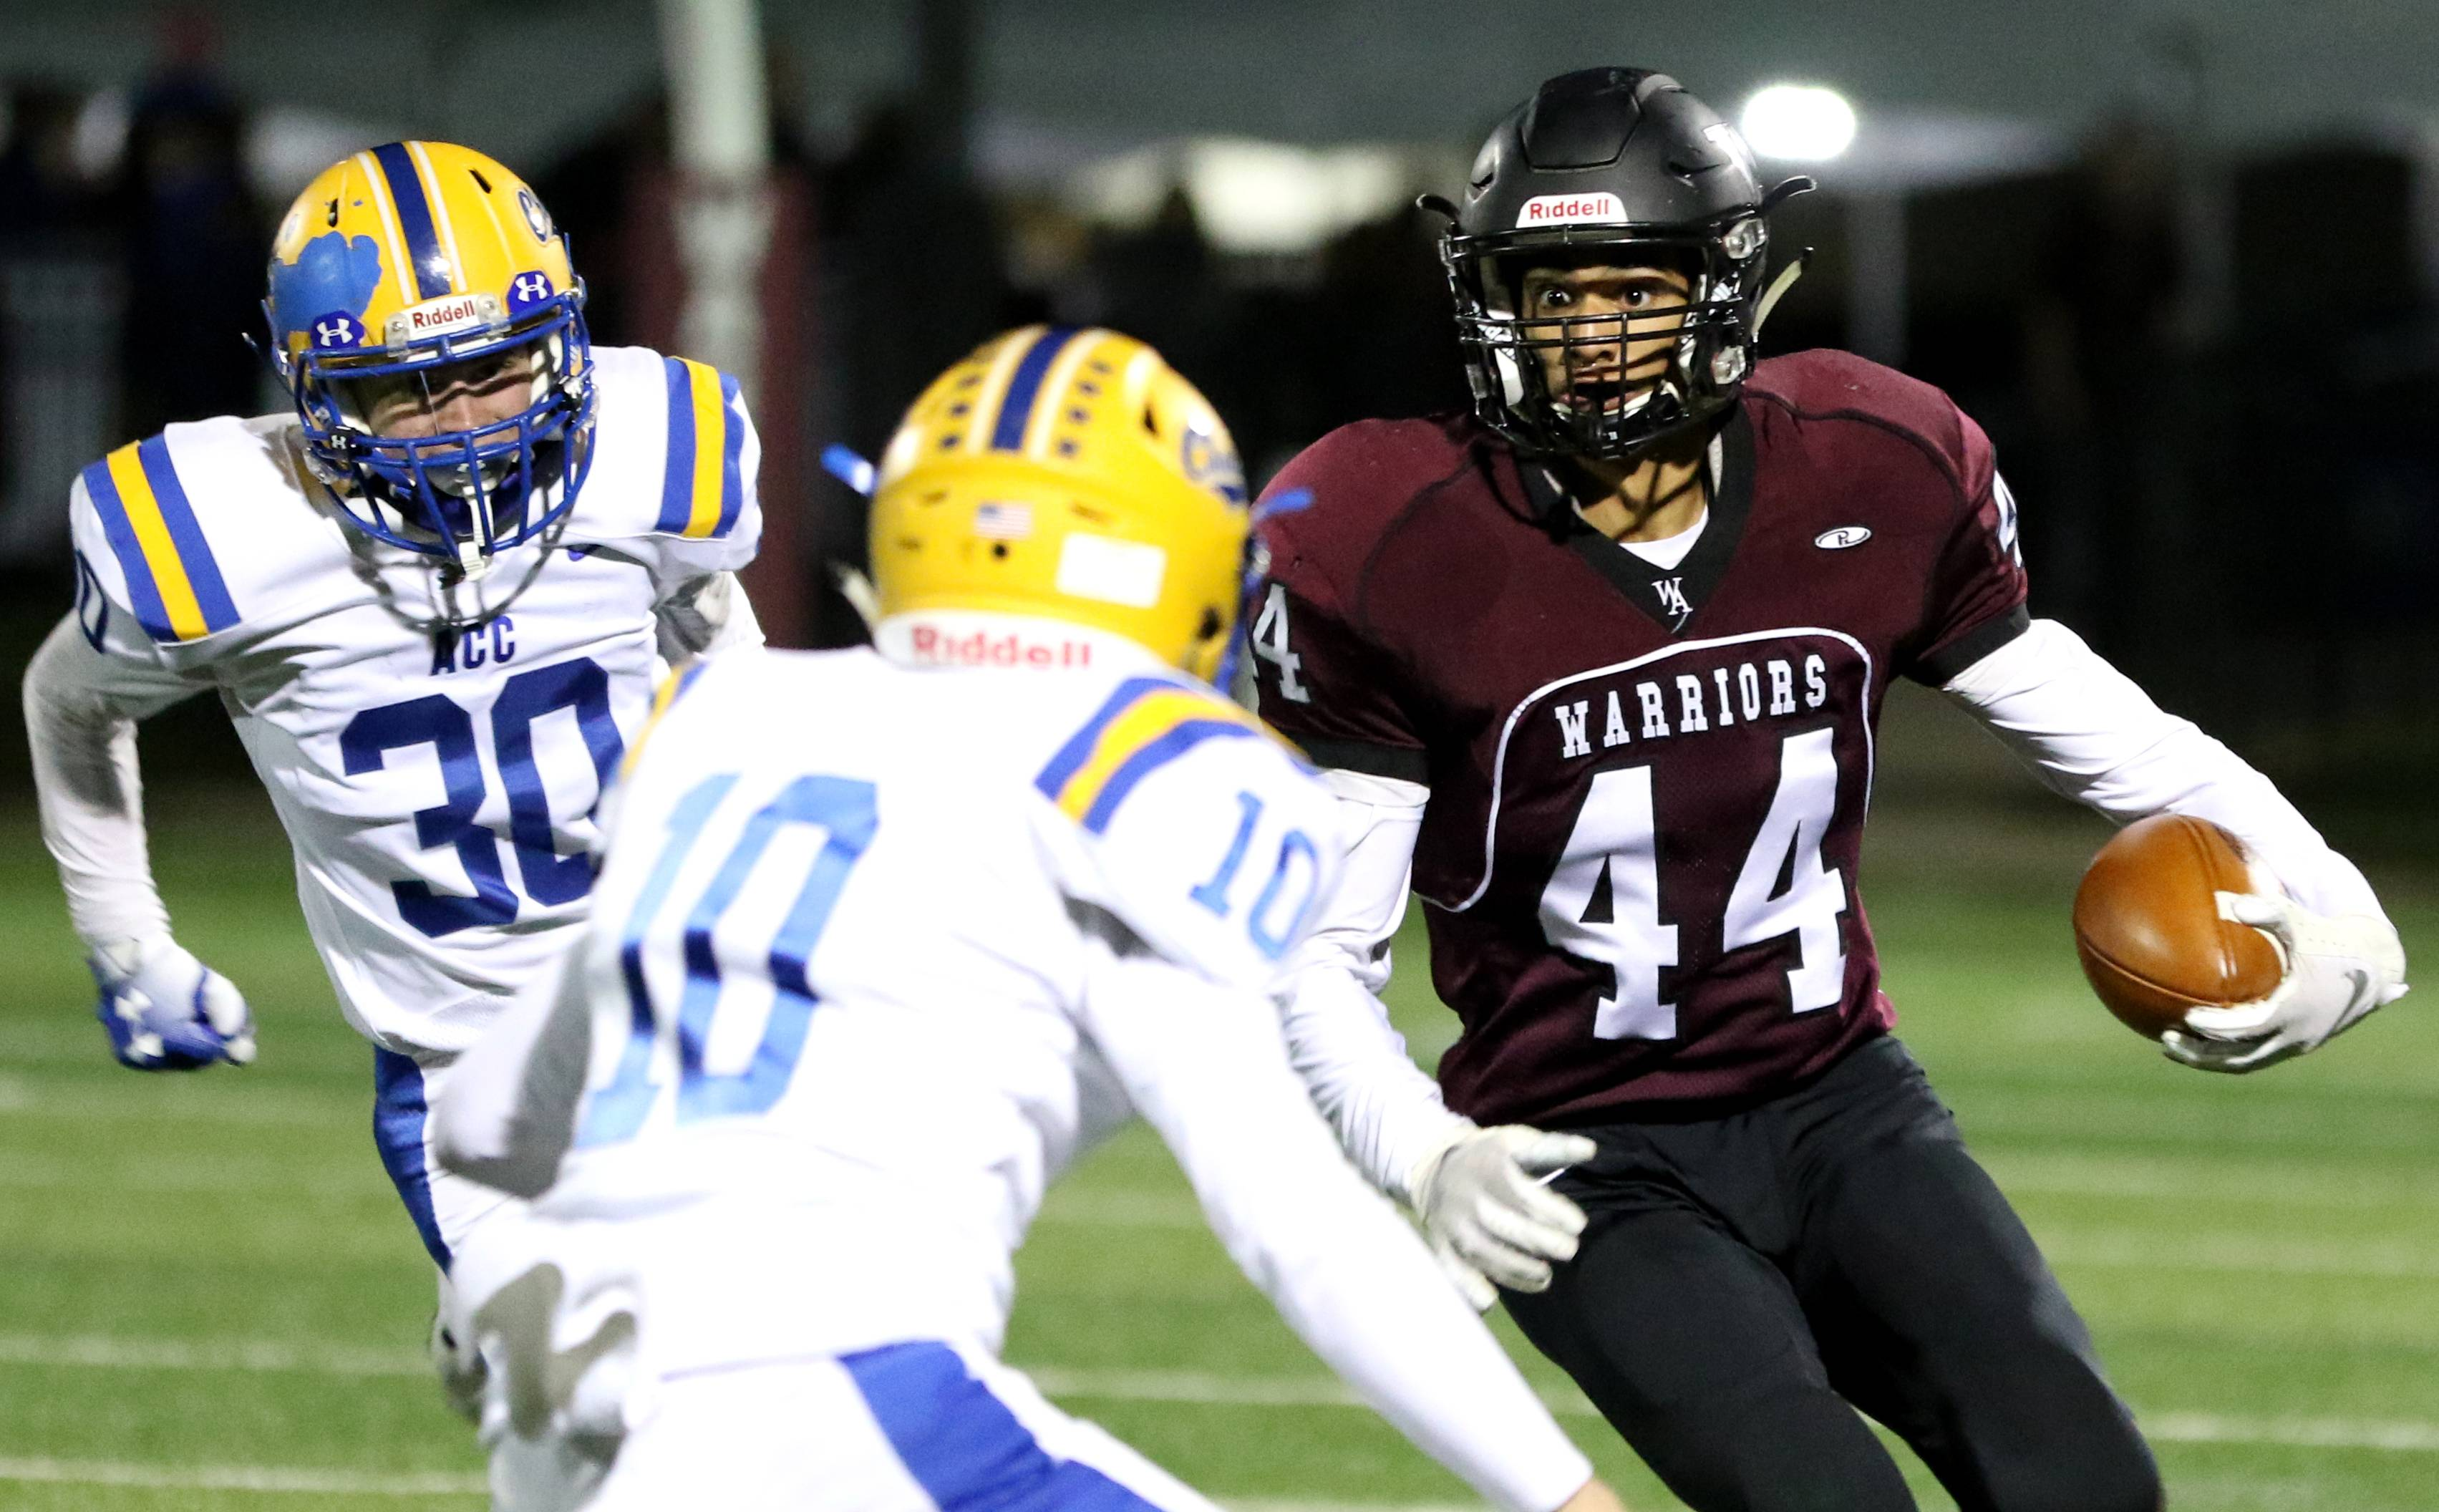 Wheaton Academy gets the hang of Thursday night football